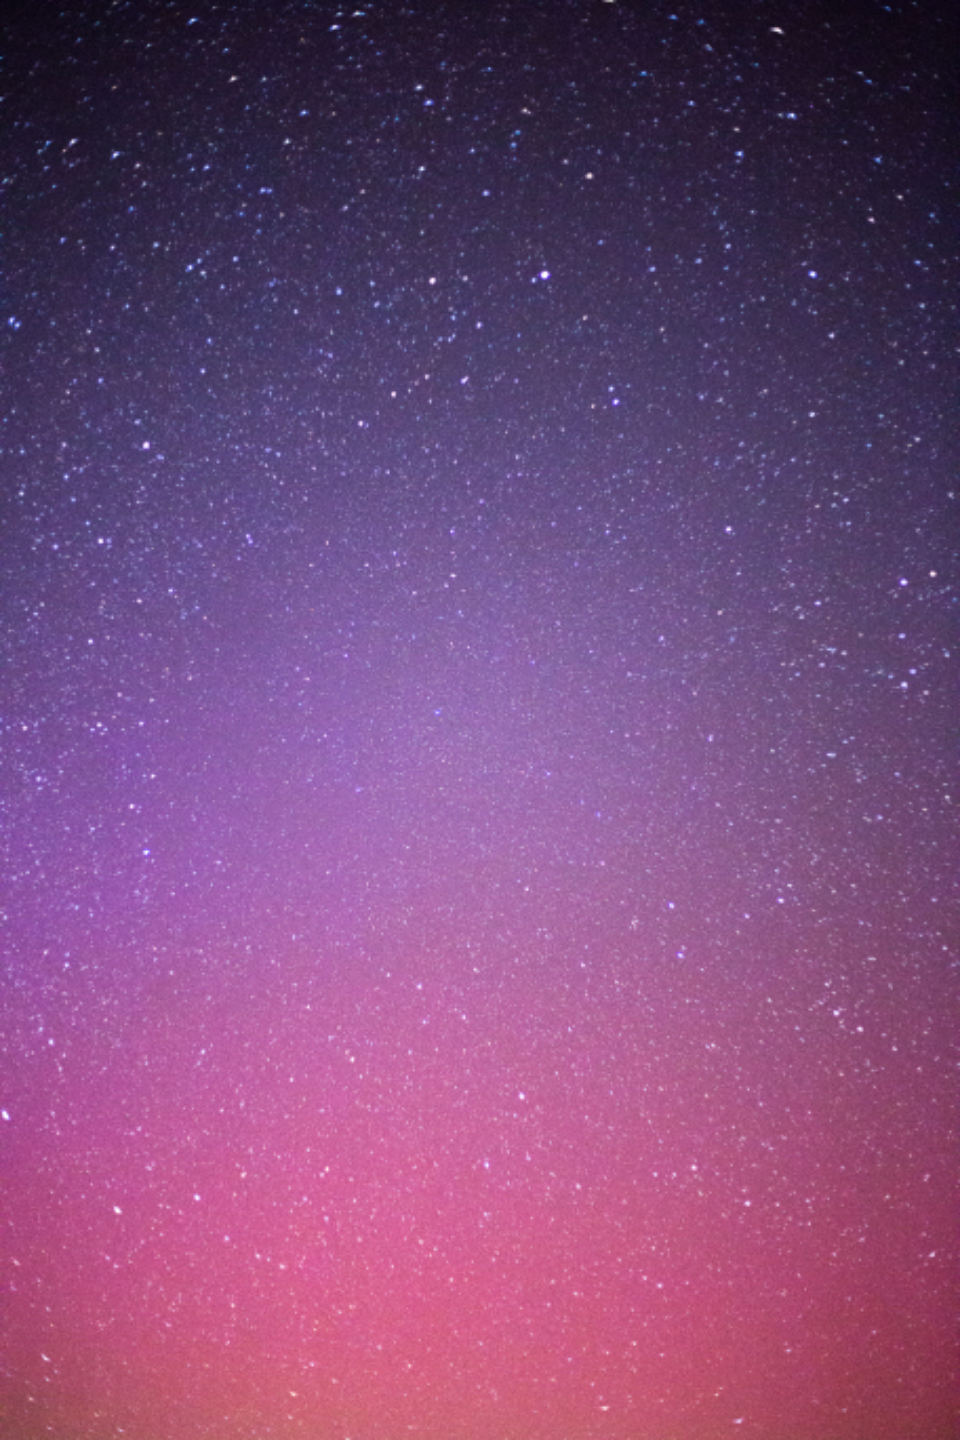 stars sky gradient nature outdoors constellations space beautiful mobile wallpaper cosmos starry aurora borealis